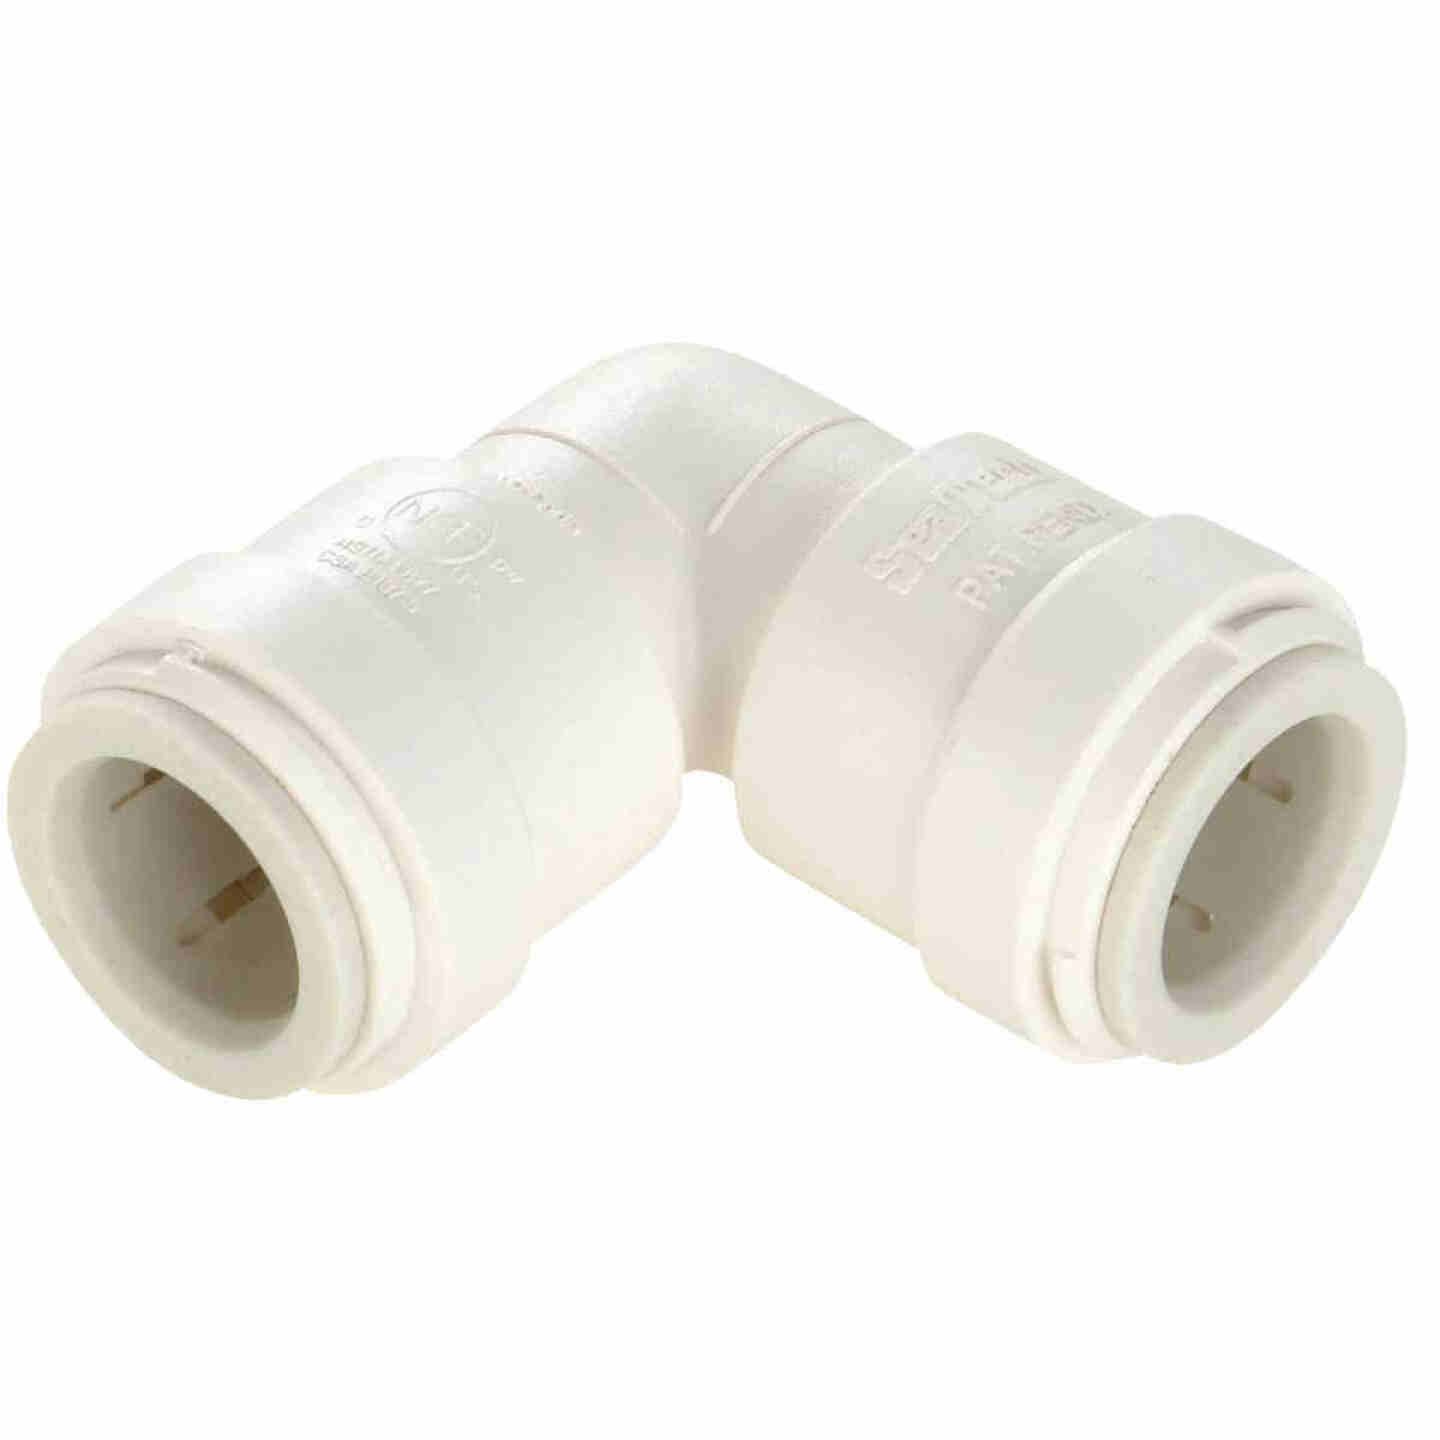 Watts 1/2 In. x 1/2 In. CTS 90 Deg. Quick Connect Plastic Elbow (1/4 Bend) Image 1